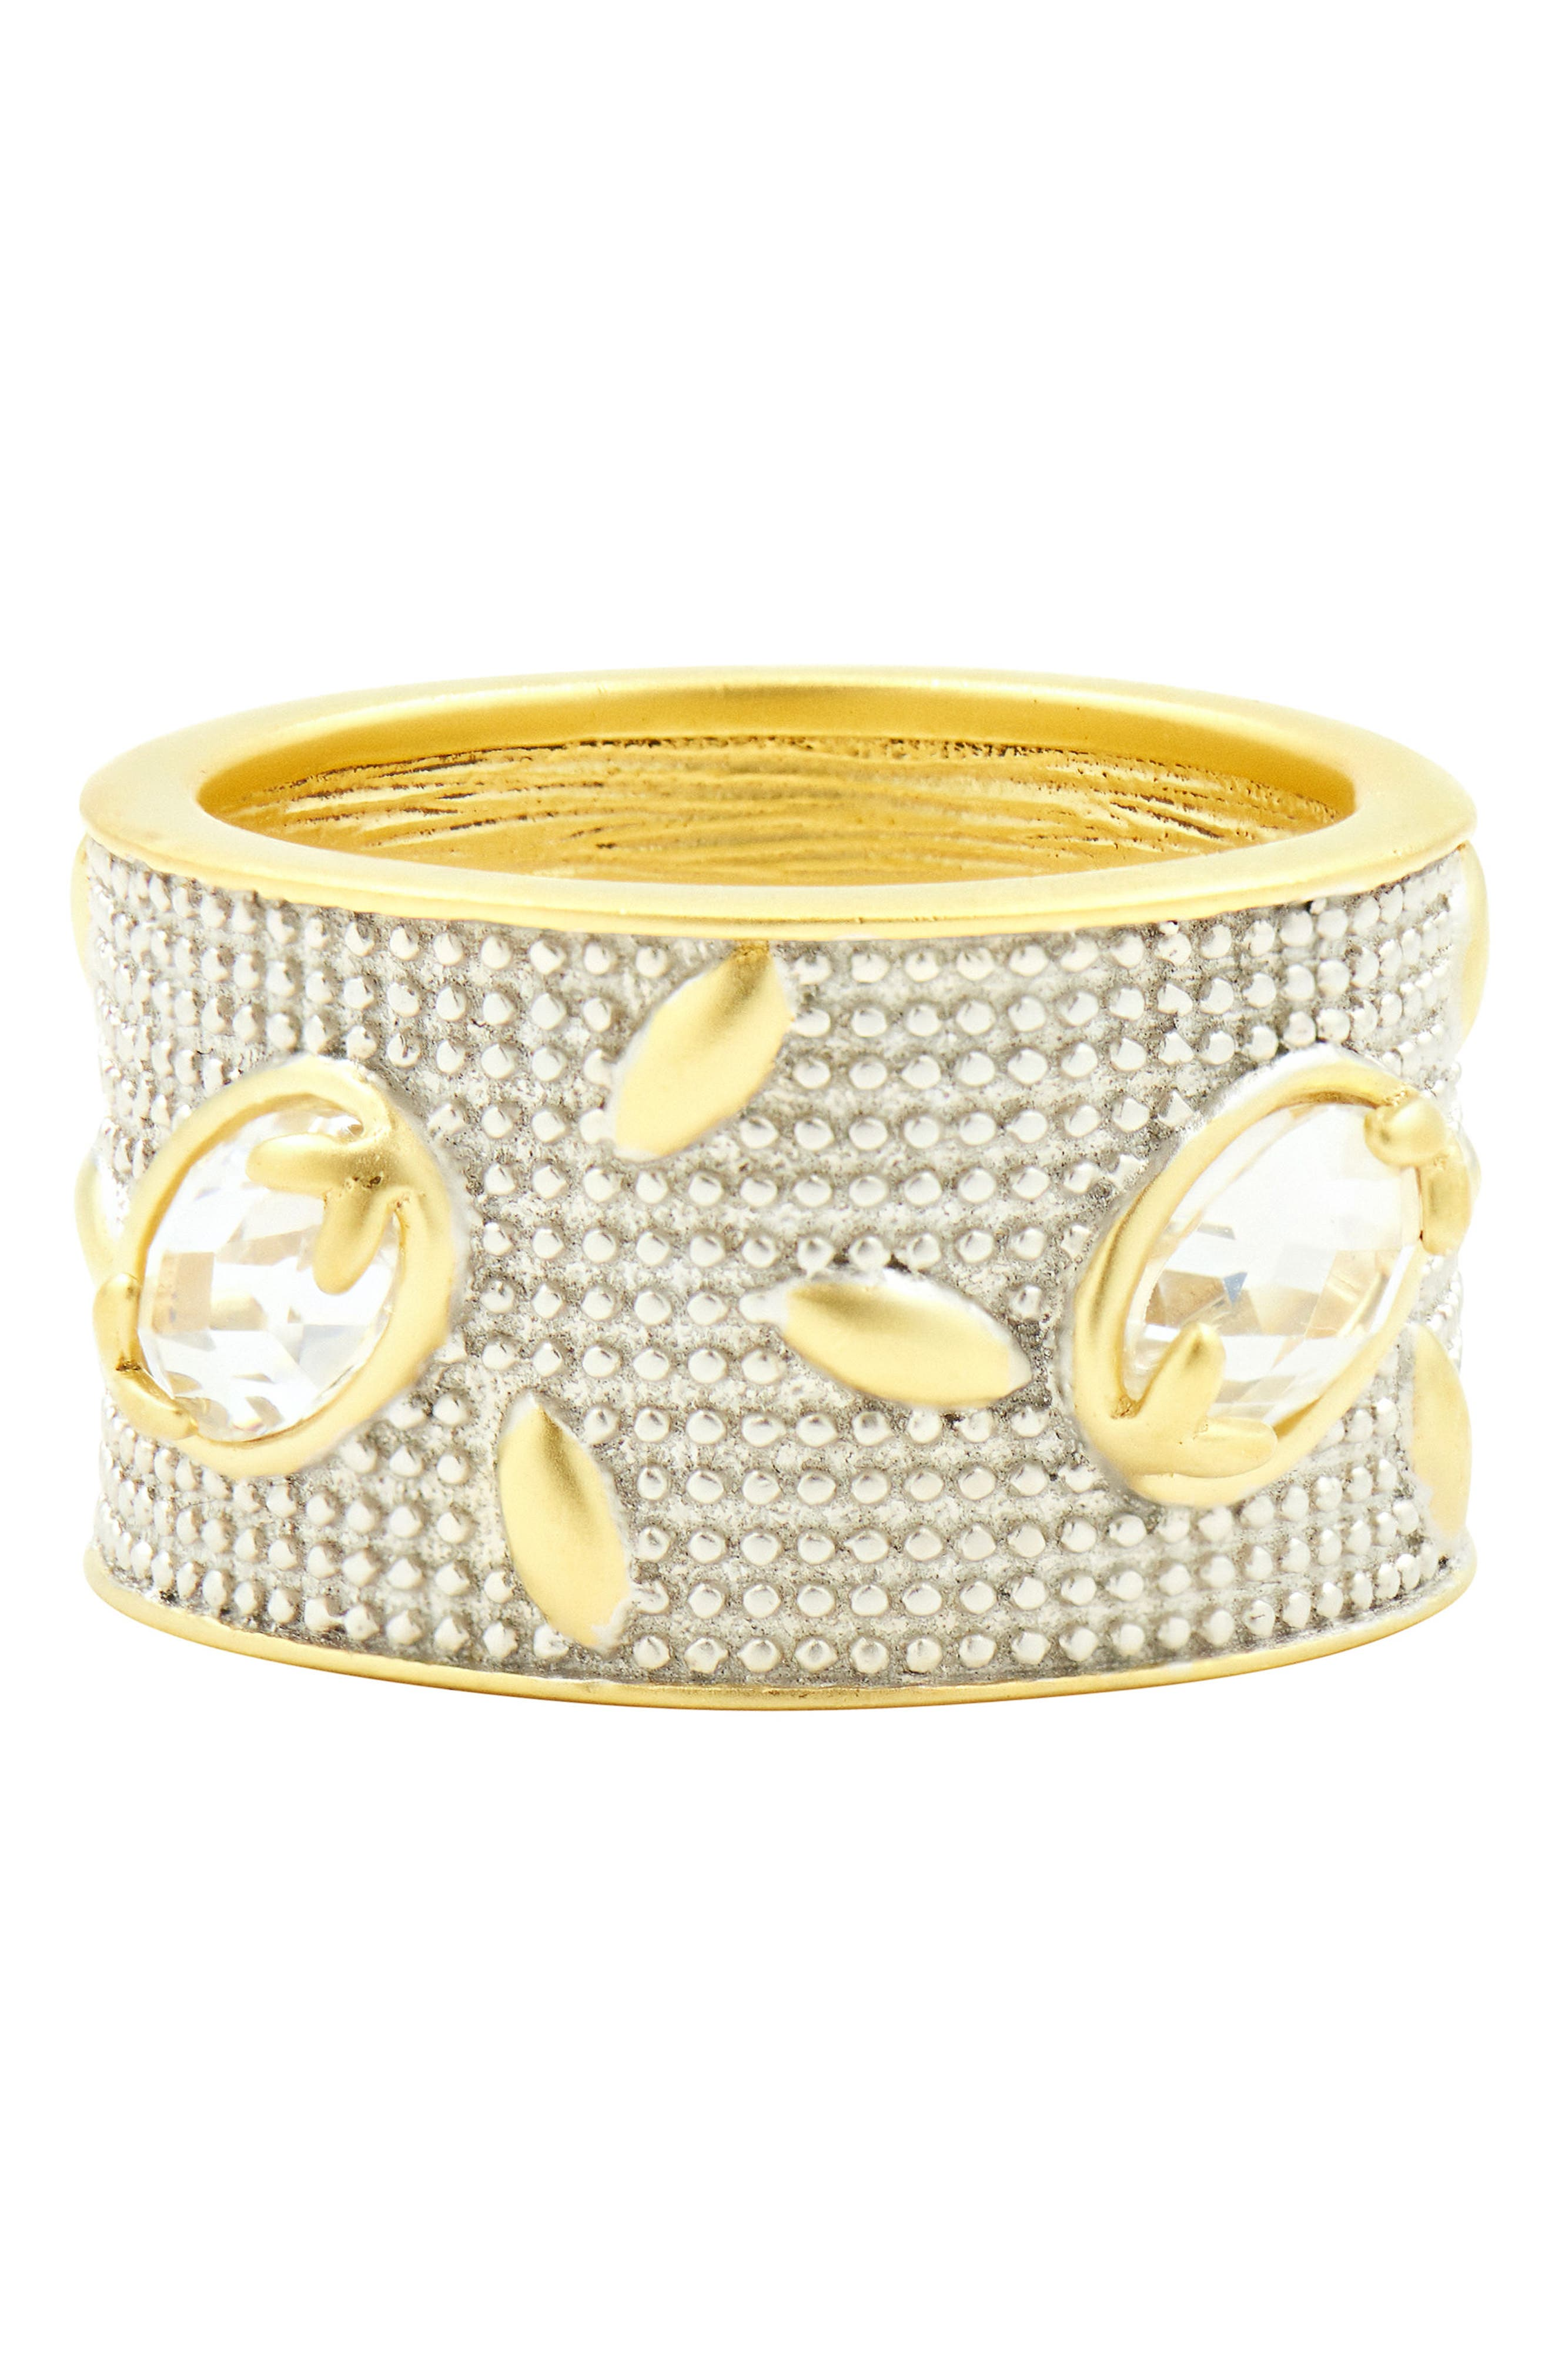 Fleur Bloom Wide Band Ring,                             Alternate thumbnail 2, color,                             SILVER AND GOLD